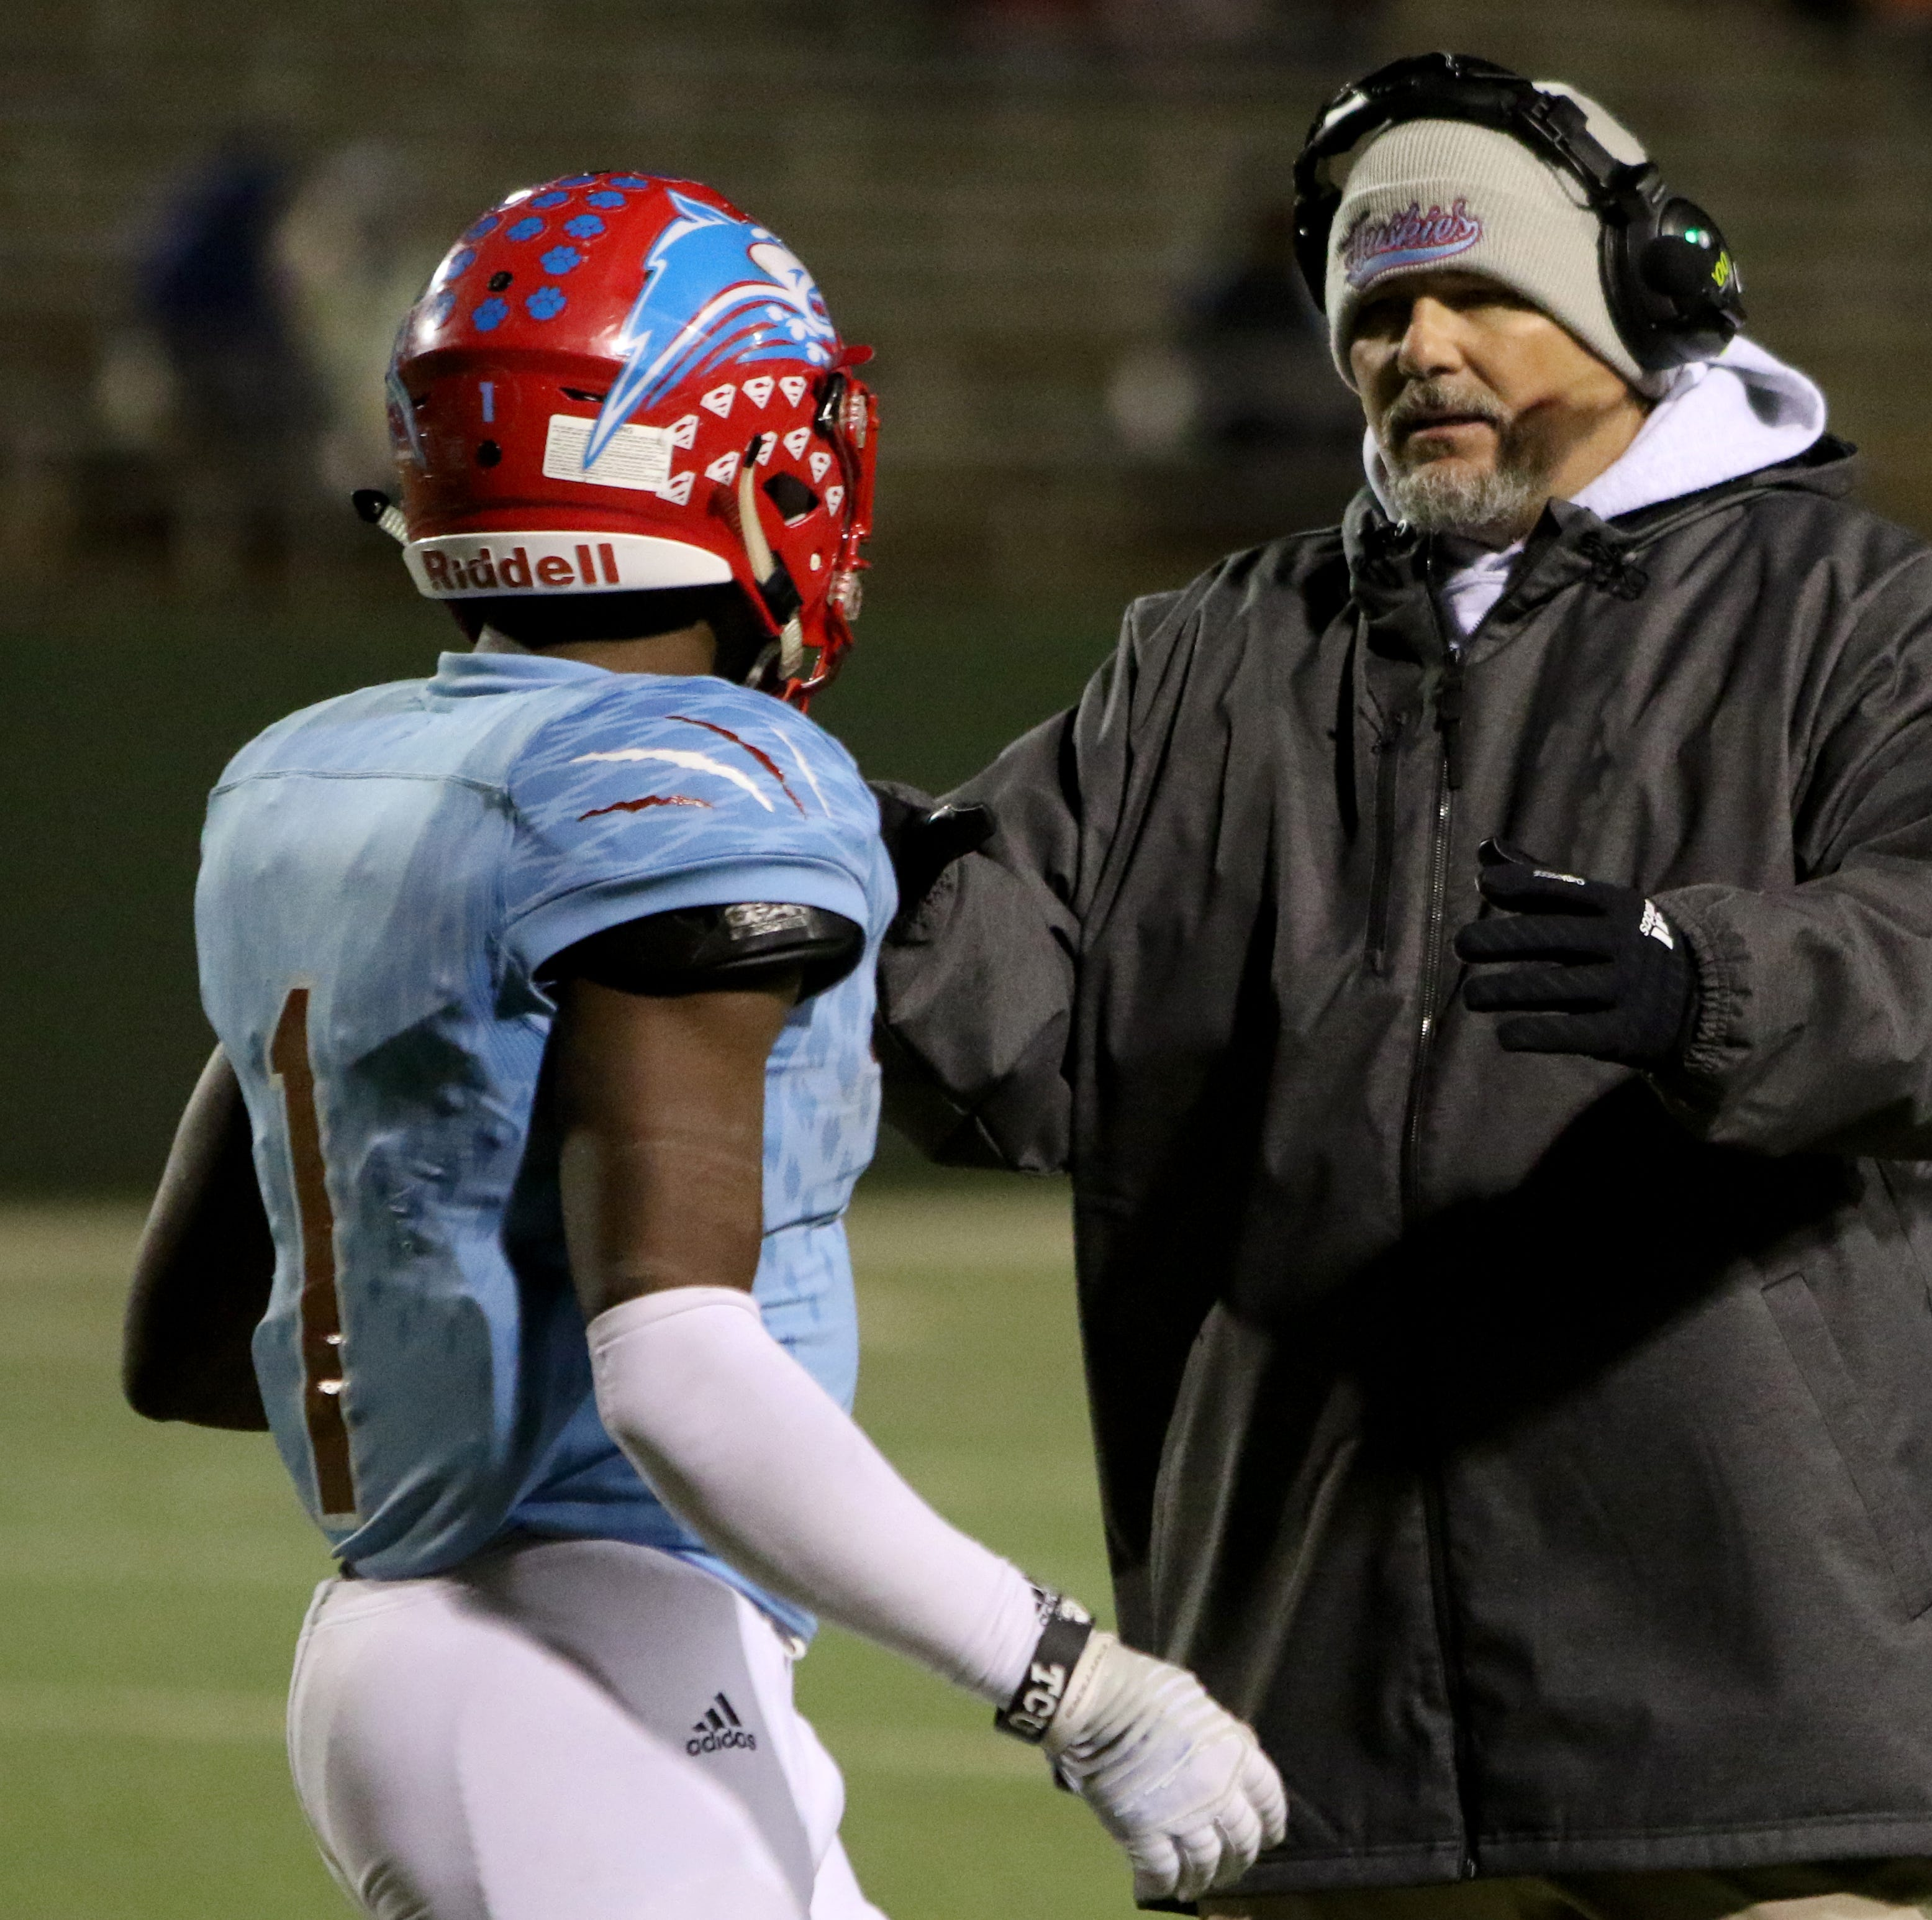 Danny Youngs makes 'gut-wrenching' decision to leave Hirschi for Brazoswood